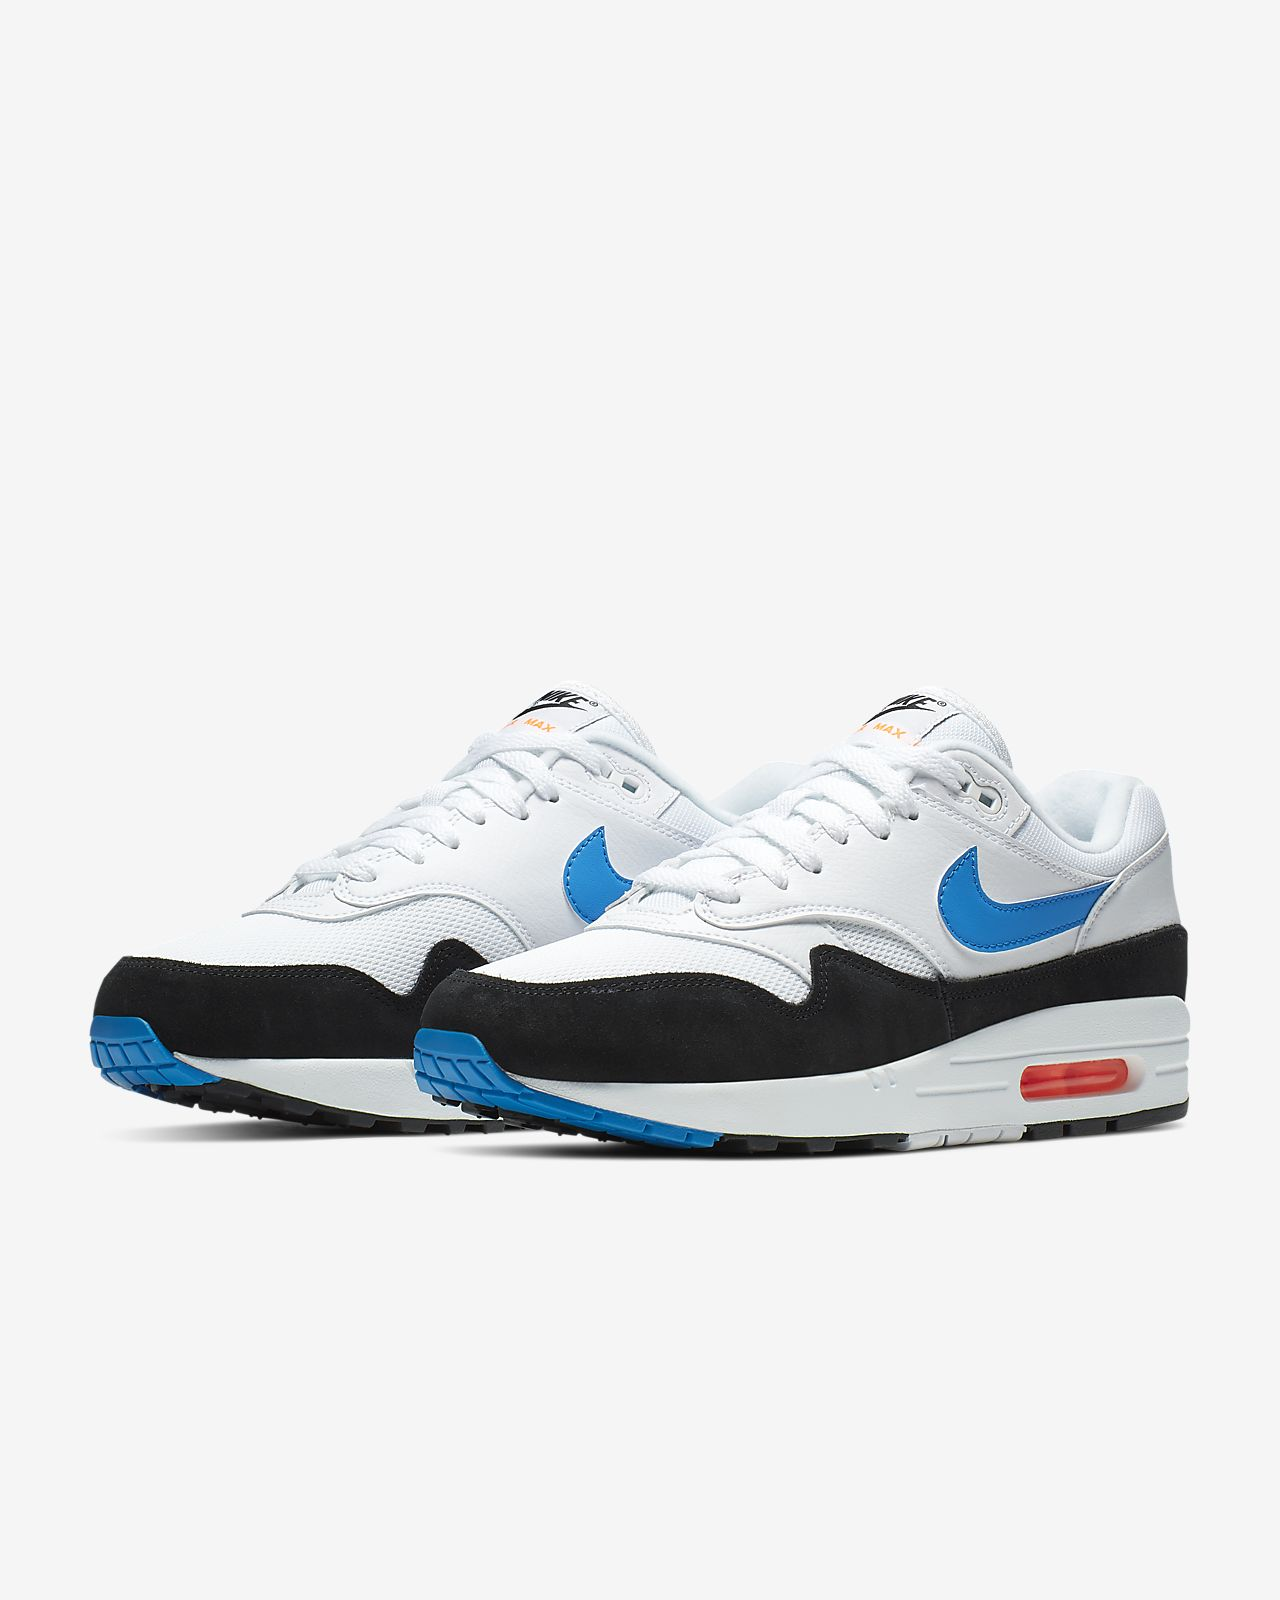 photos officielles 3dd78 9f5b4 Nike Air Max 1 Men's Shoe